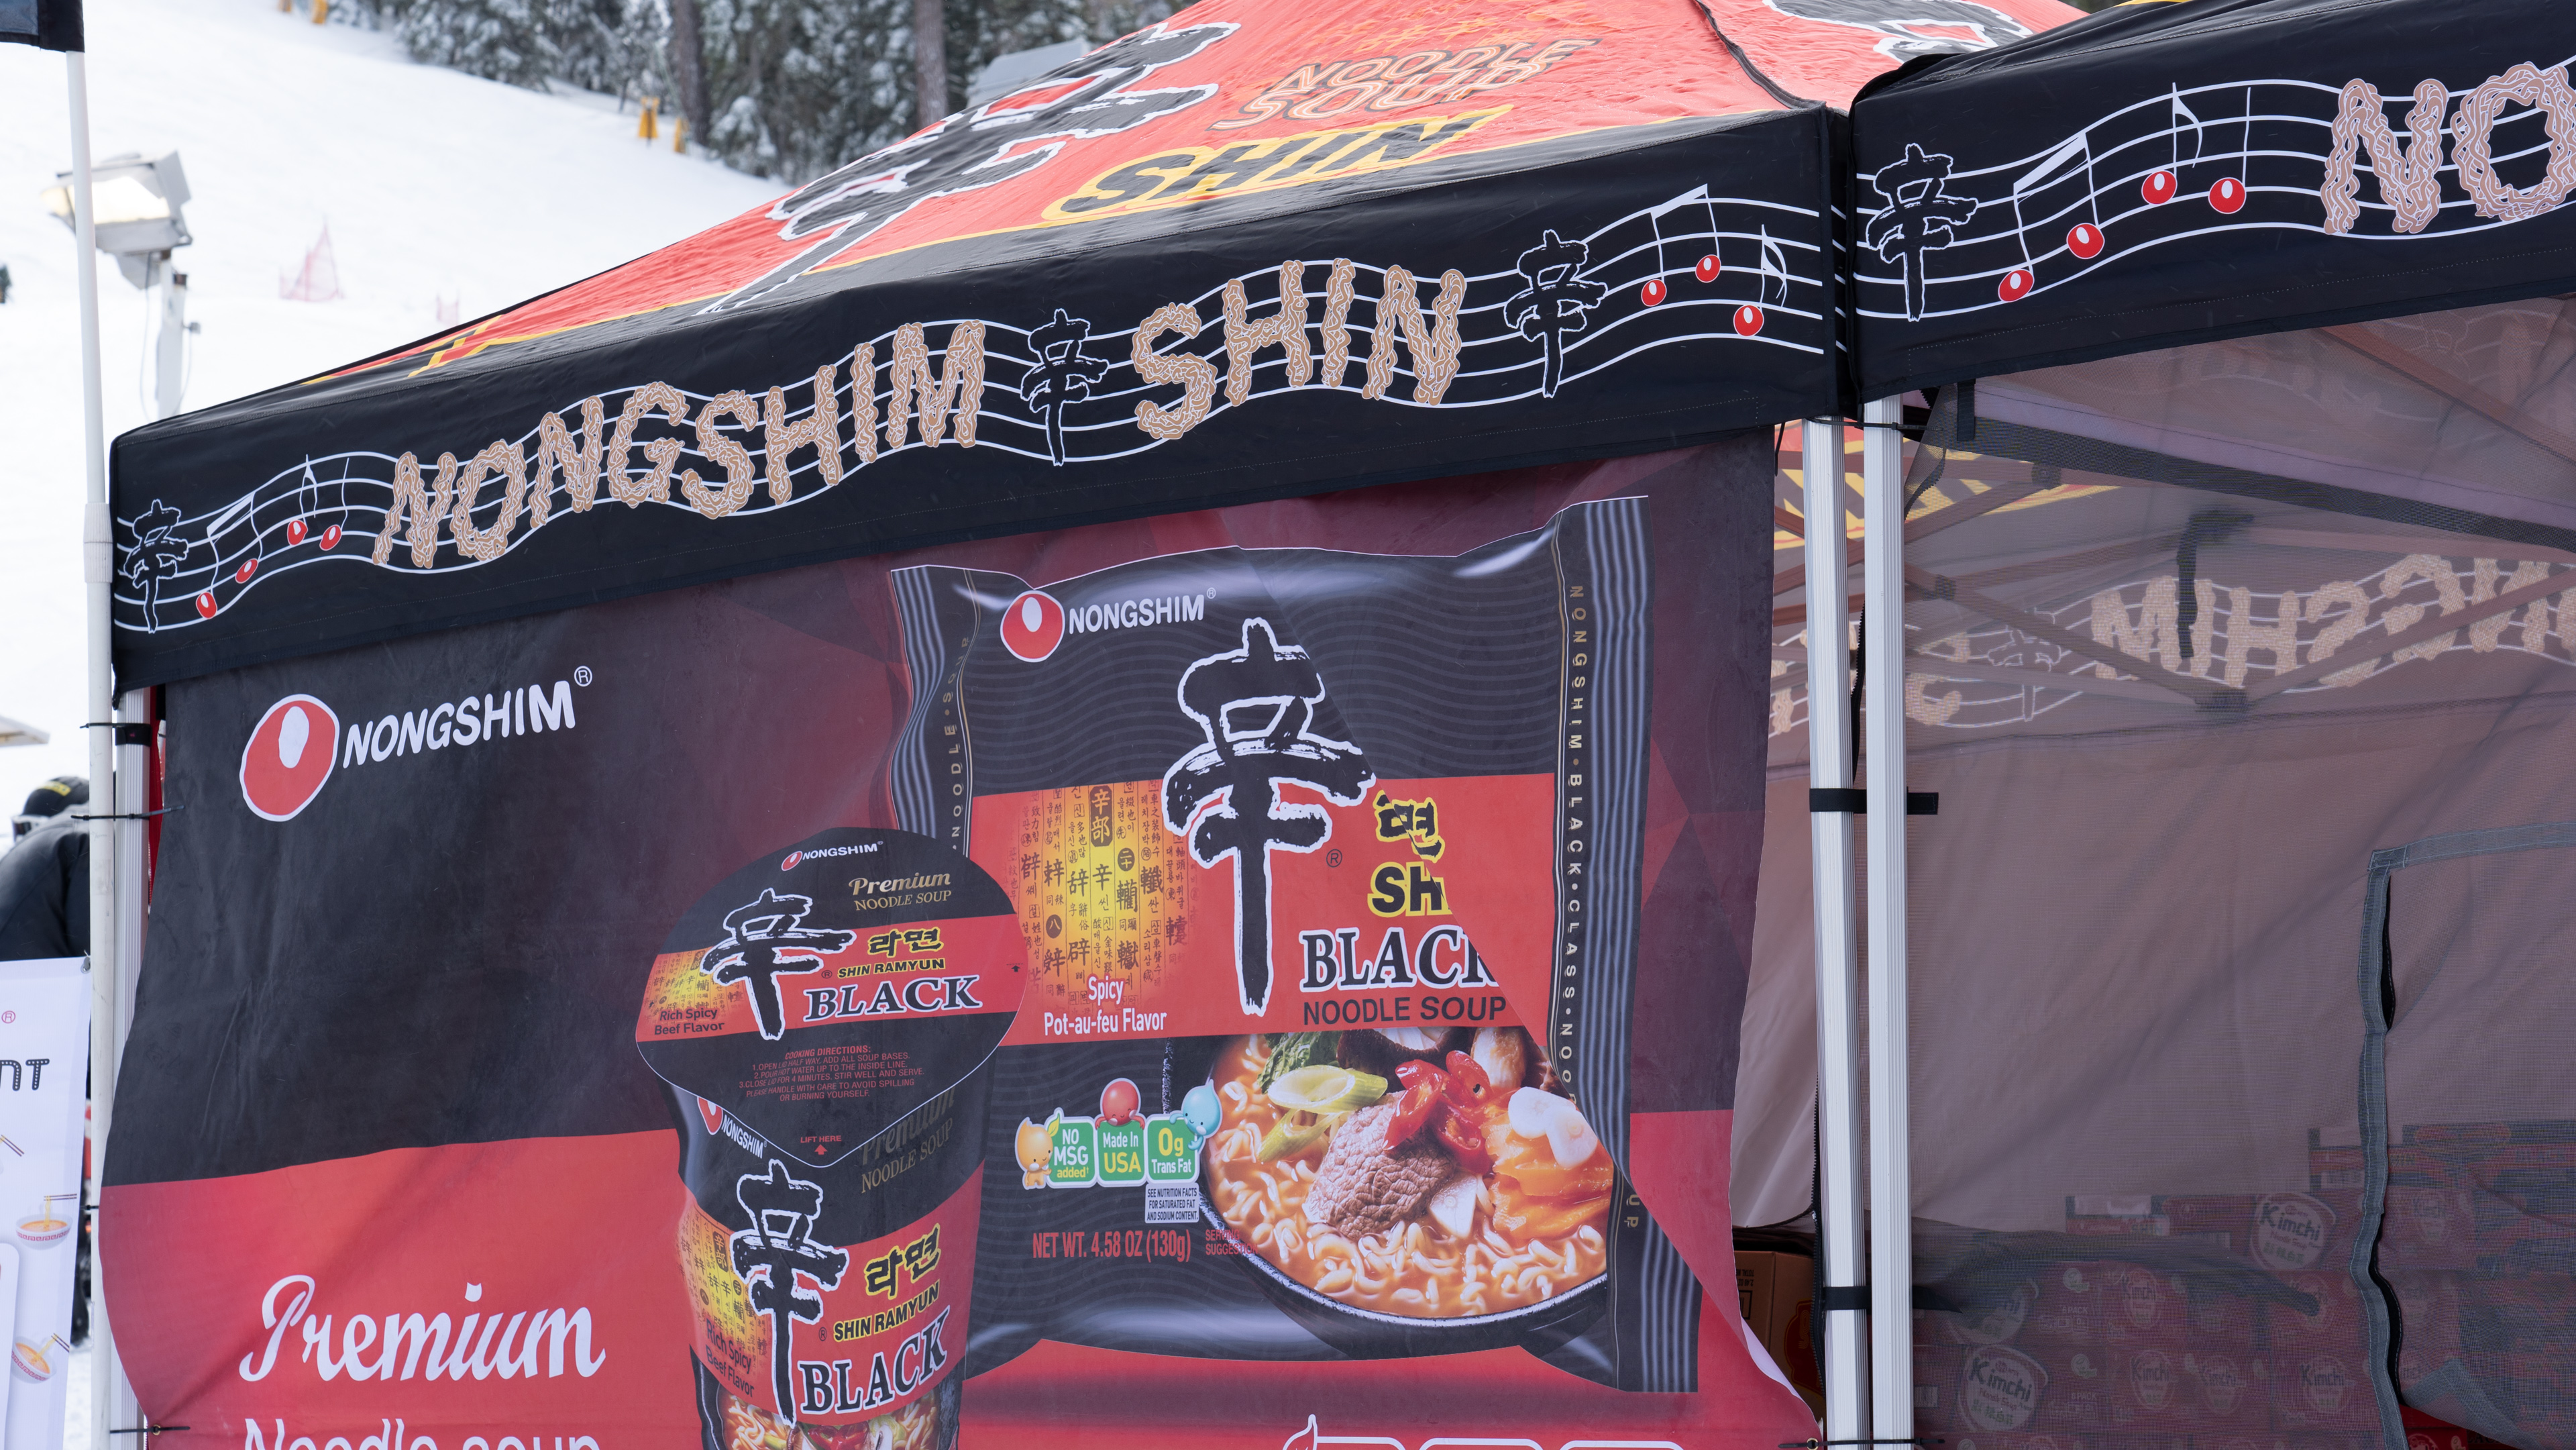 Nongshim Booth @ Mountain High